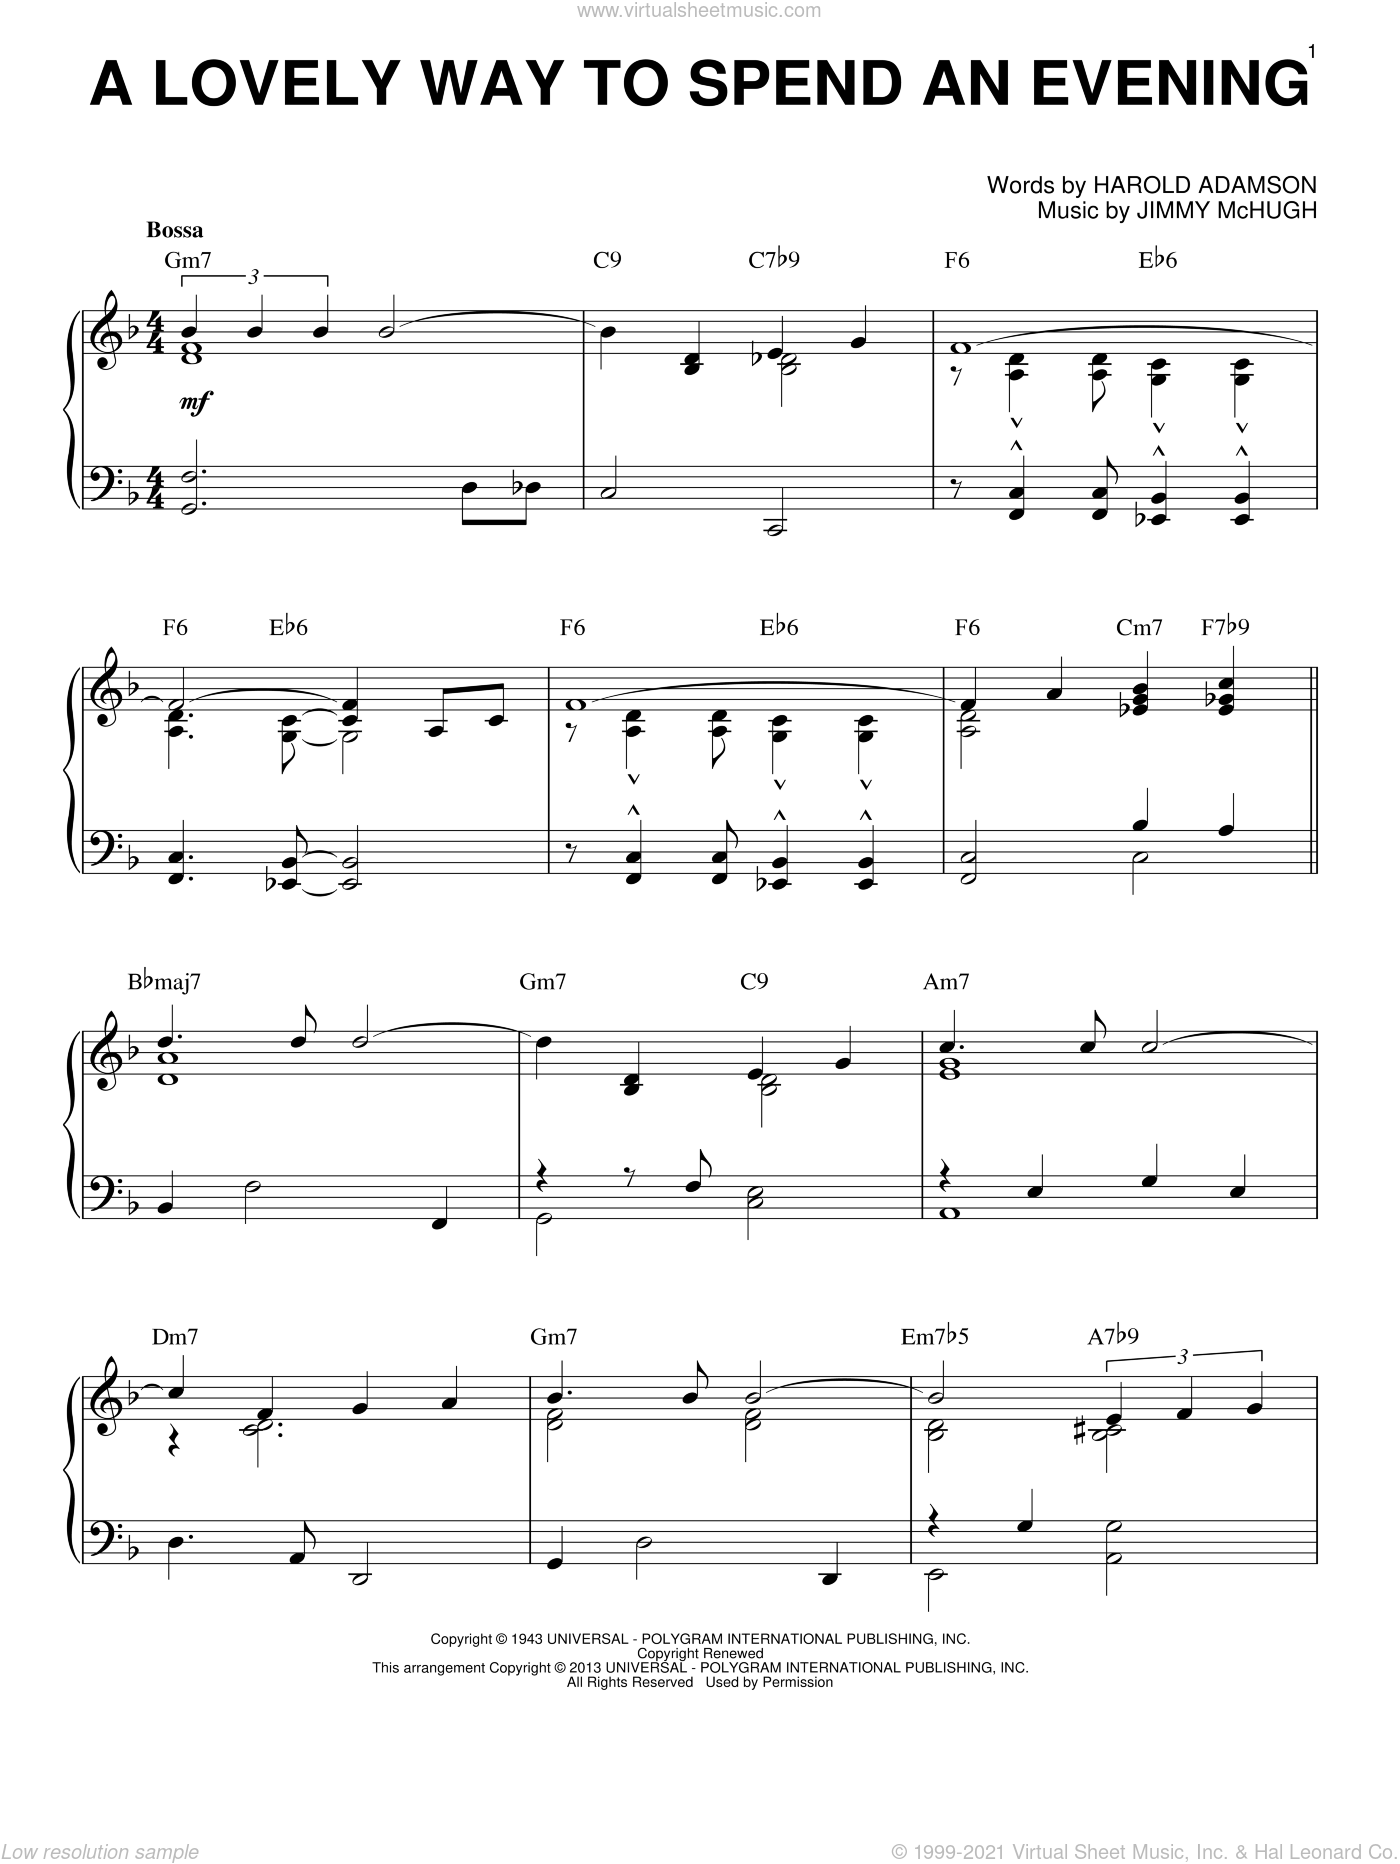 A Lovely Way To Spend An Evening sheet music for piano solo by Frank Sinatra. Score Image Preview.